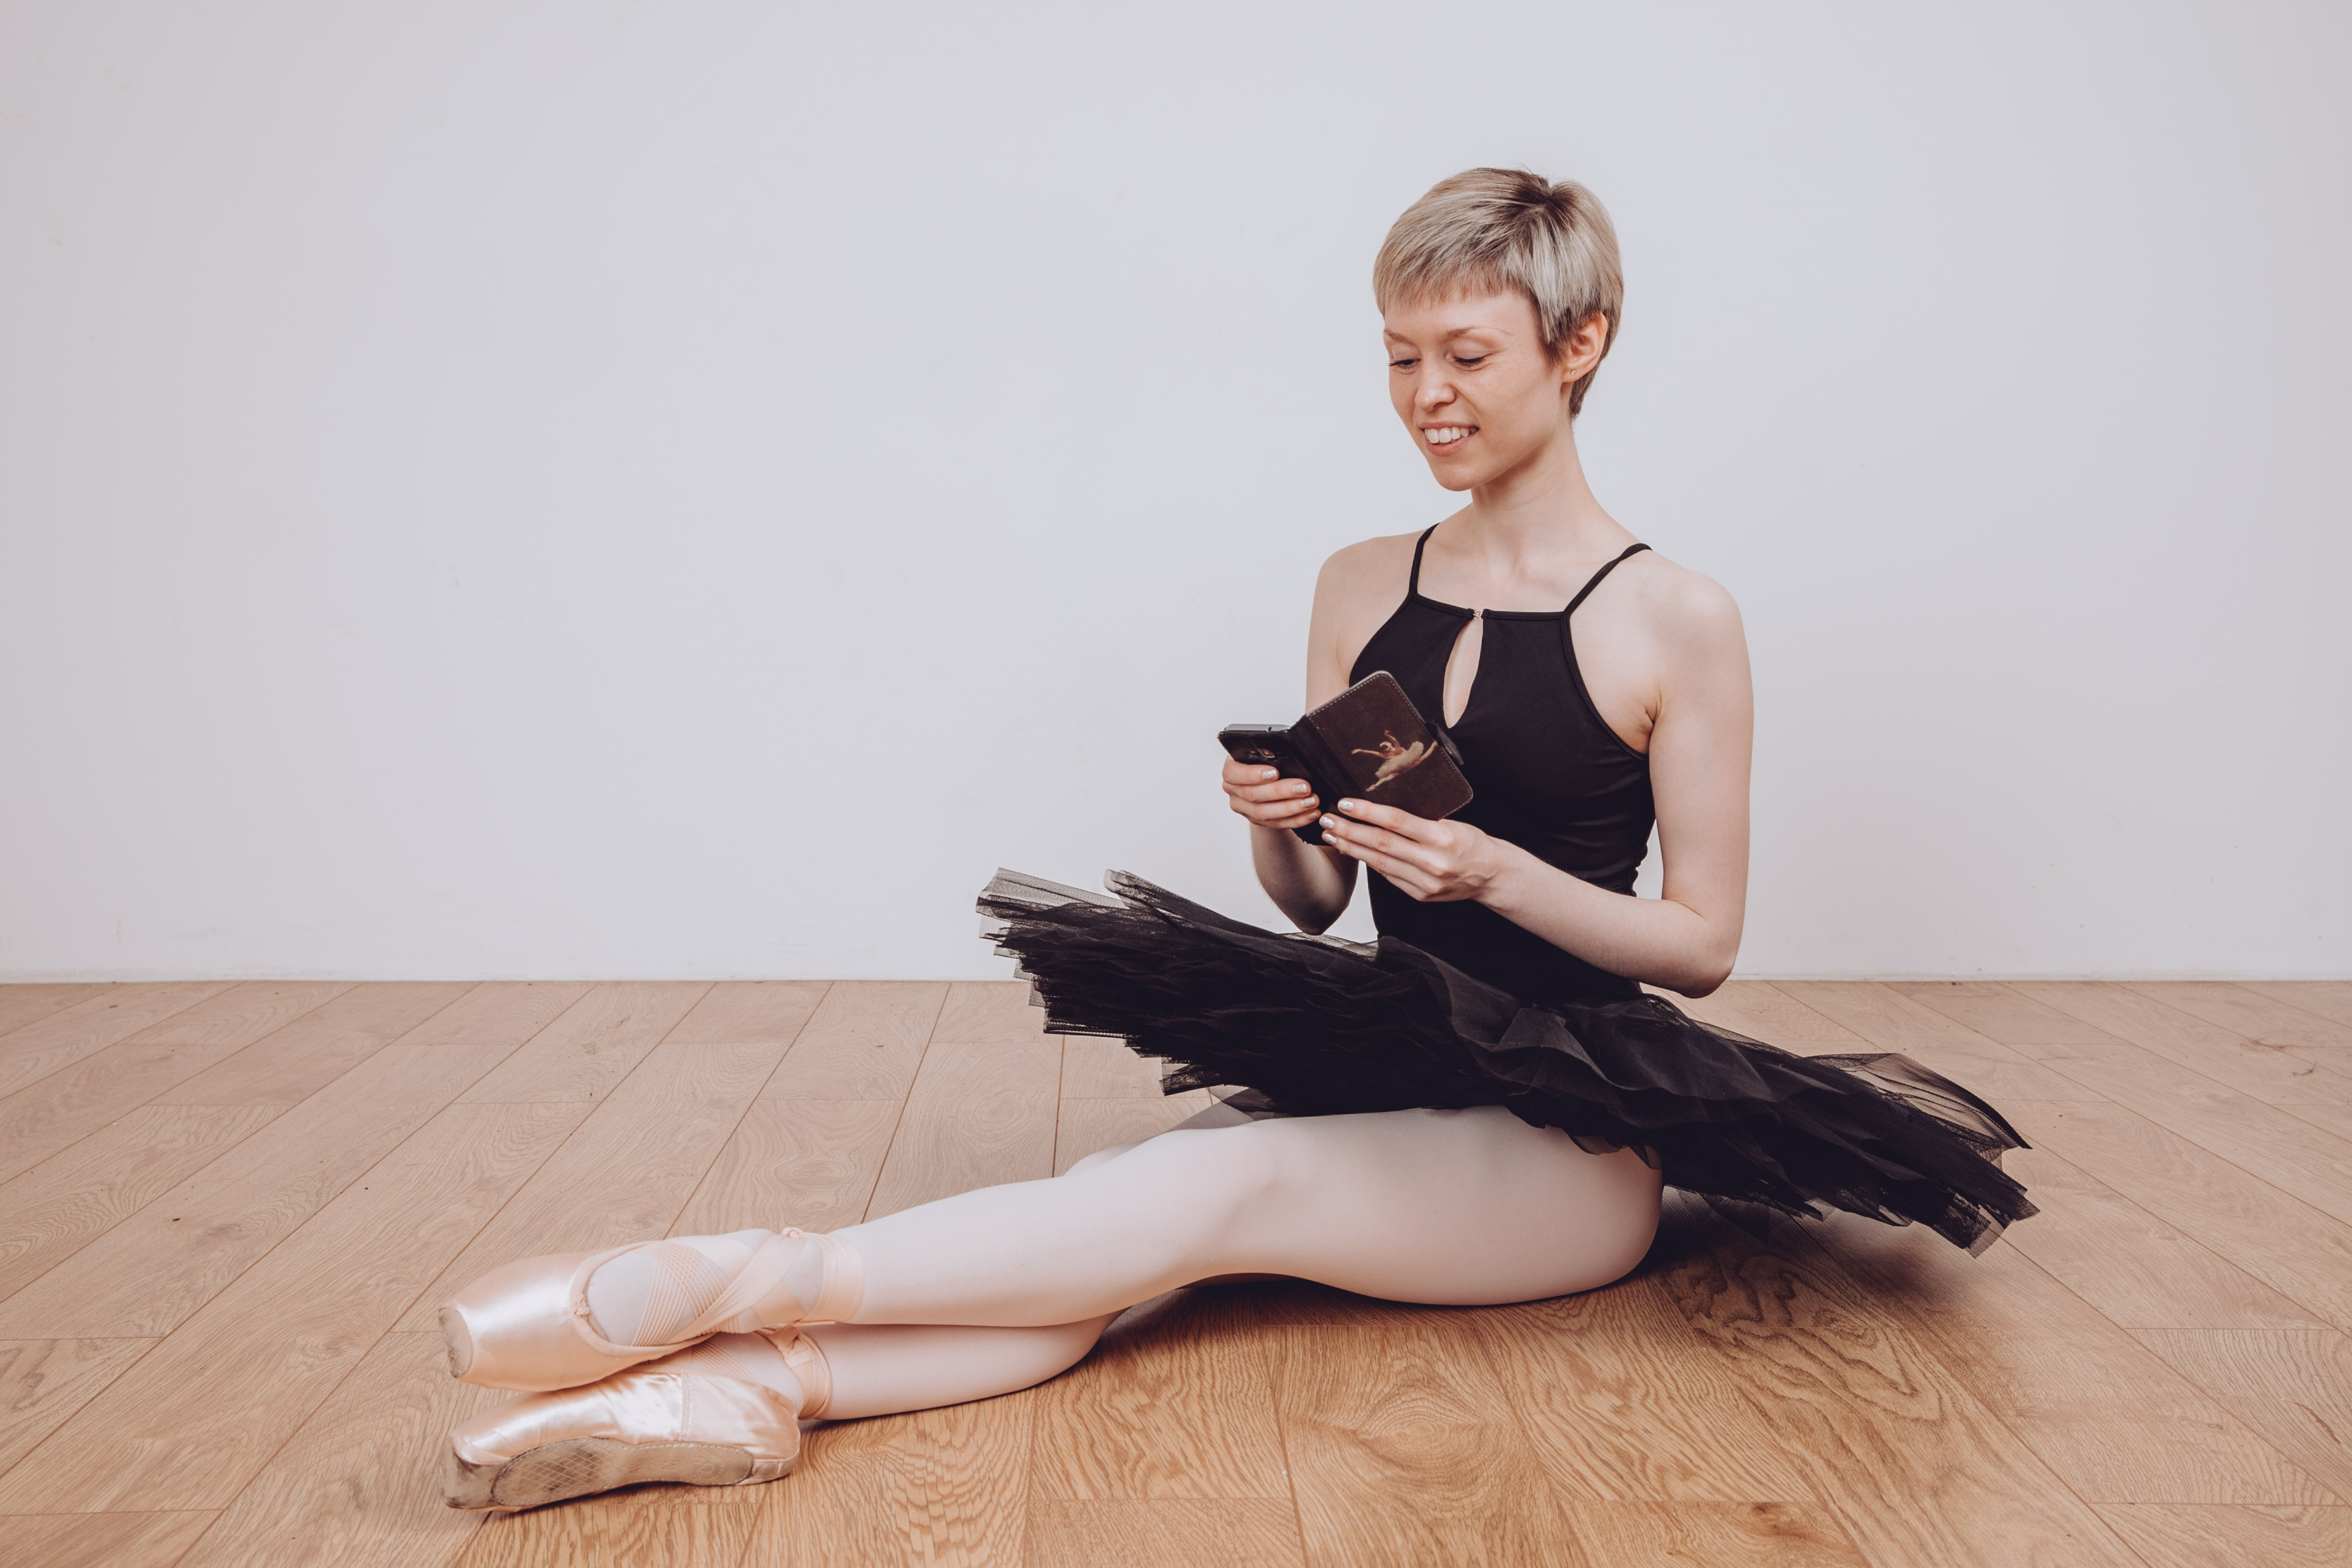 World Ballet Day 2019. Georgina Butler – wearing a black leotard, tutu and pointe shoes – sitting on the floor looking at her phone, ready to watch the annual online celebration of ballet.